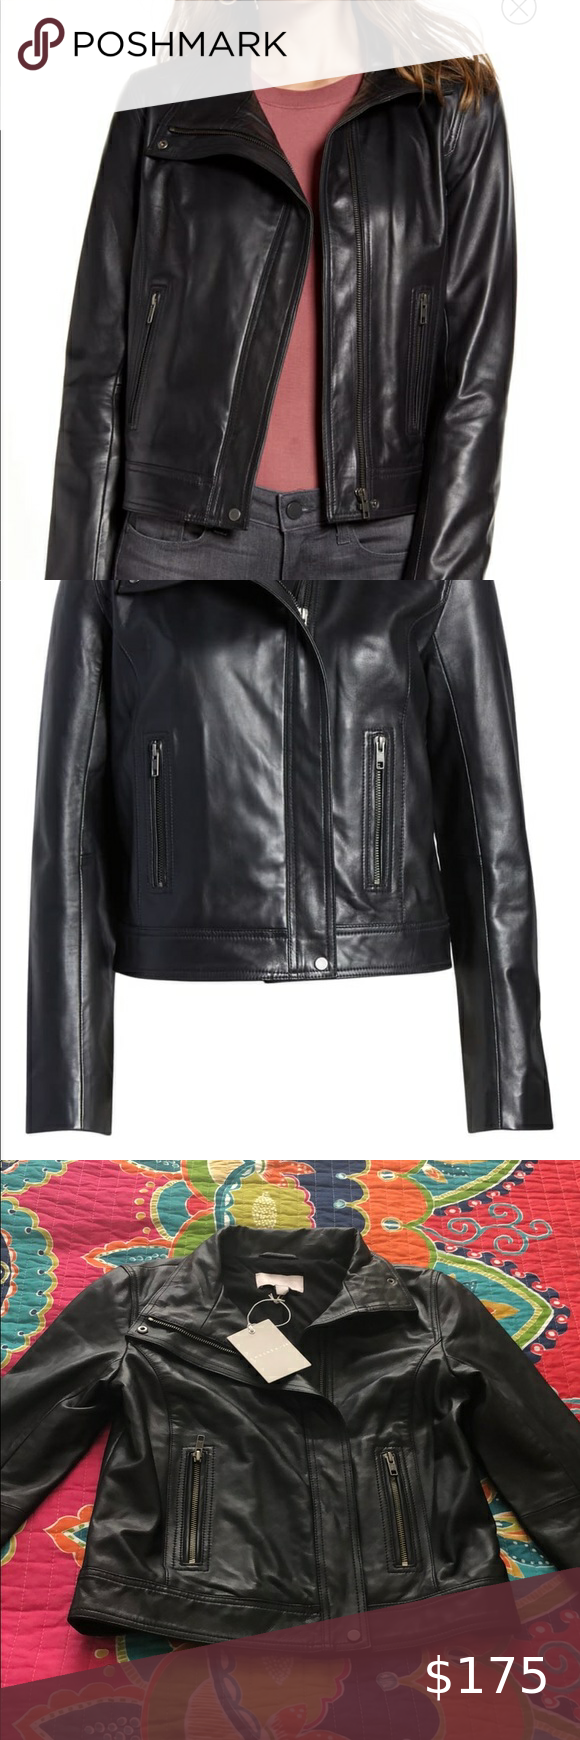 Chelsea 28 Stand Collar Leather Jacket Nwt Size Xs In 2020 Collar Leather Jacket Leather Jacket Jackets [ 1740 x 580 Pixel ]